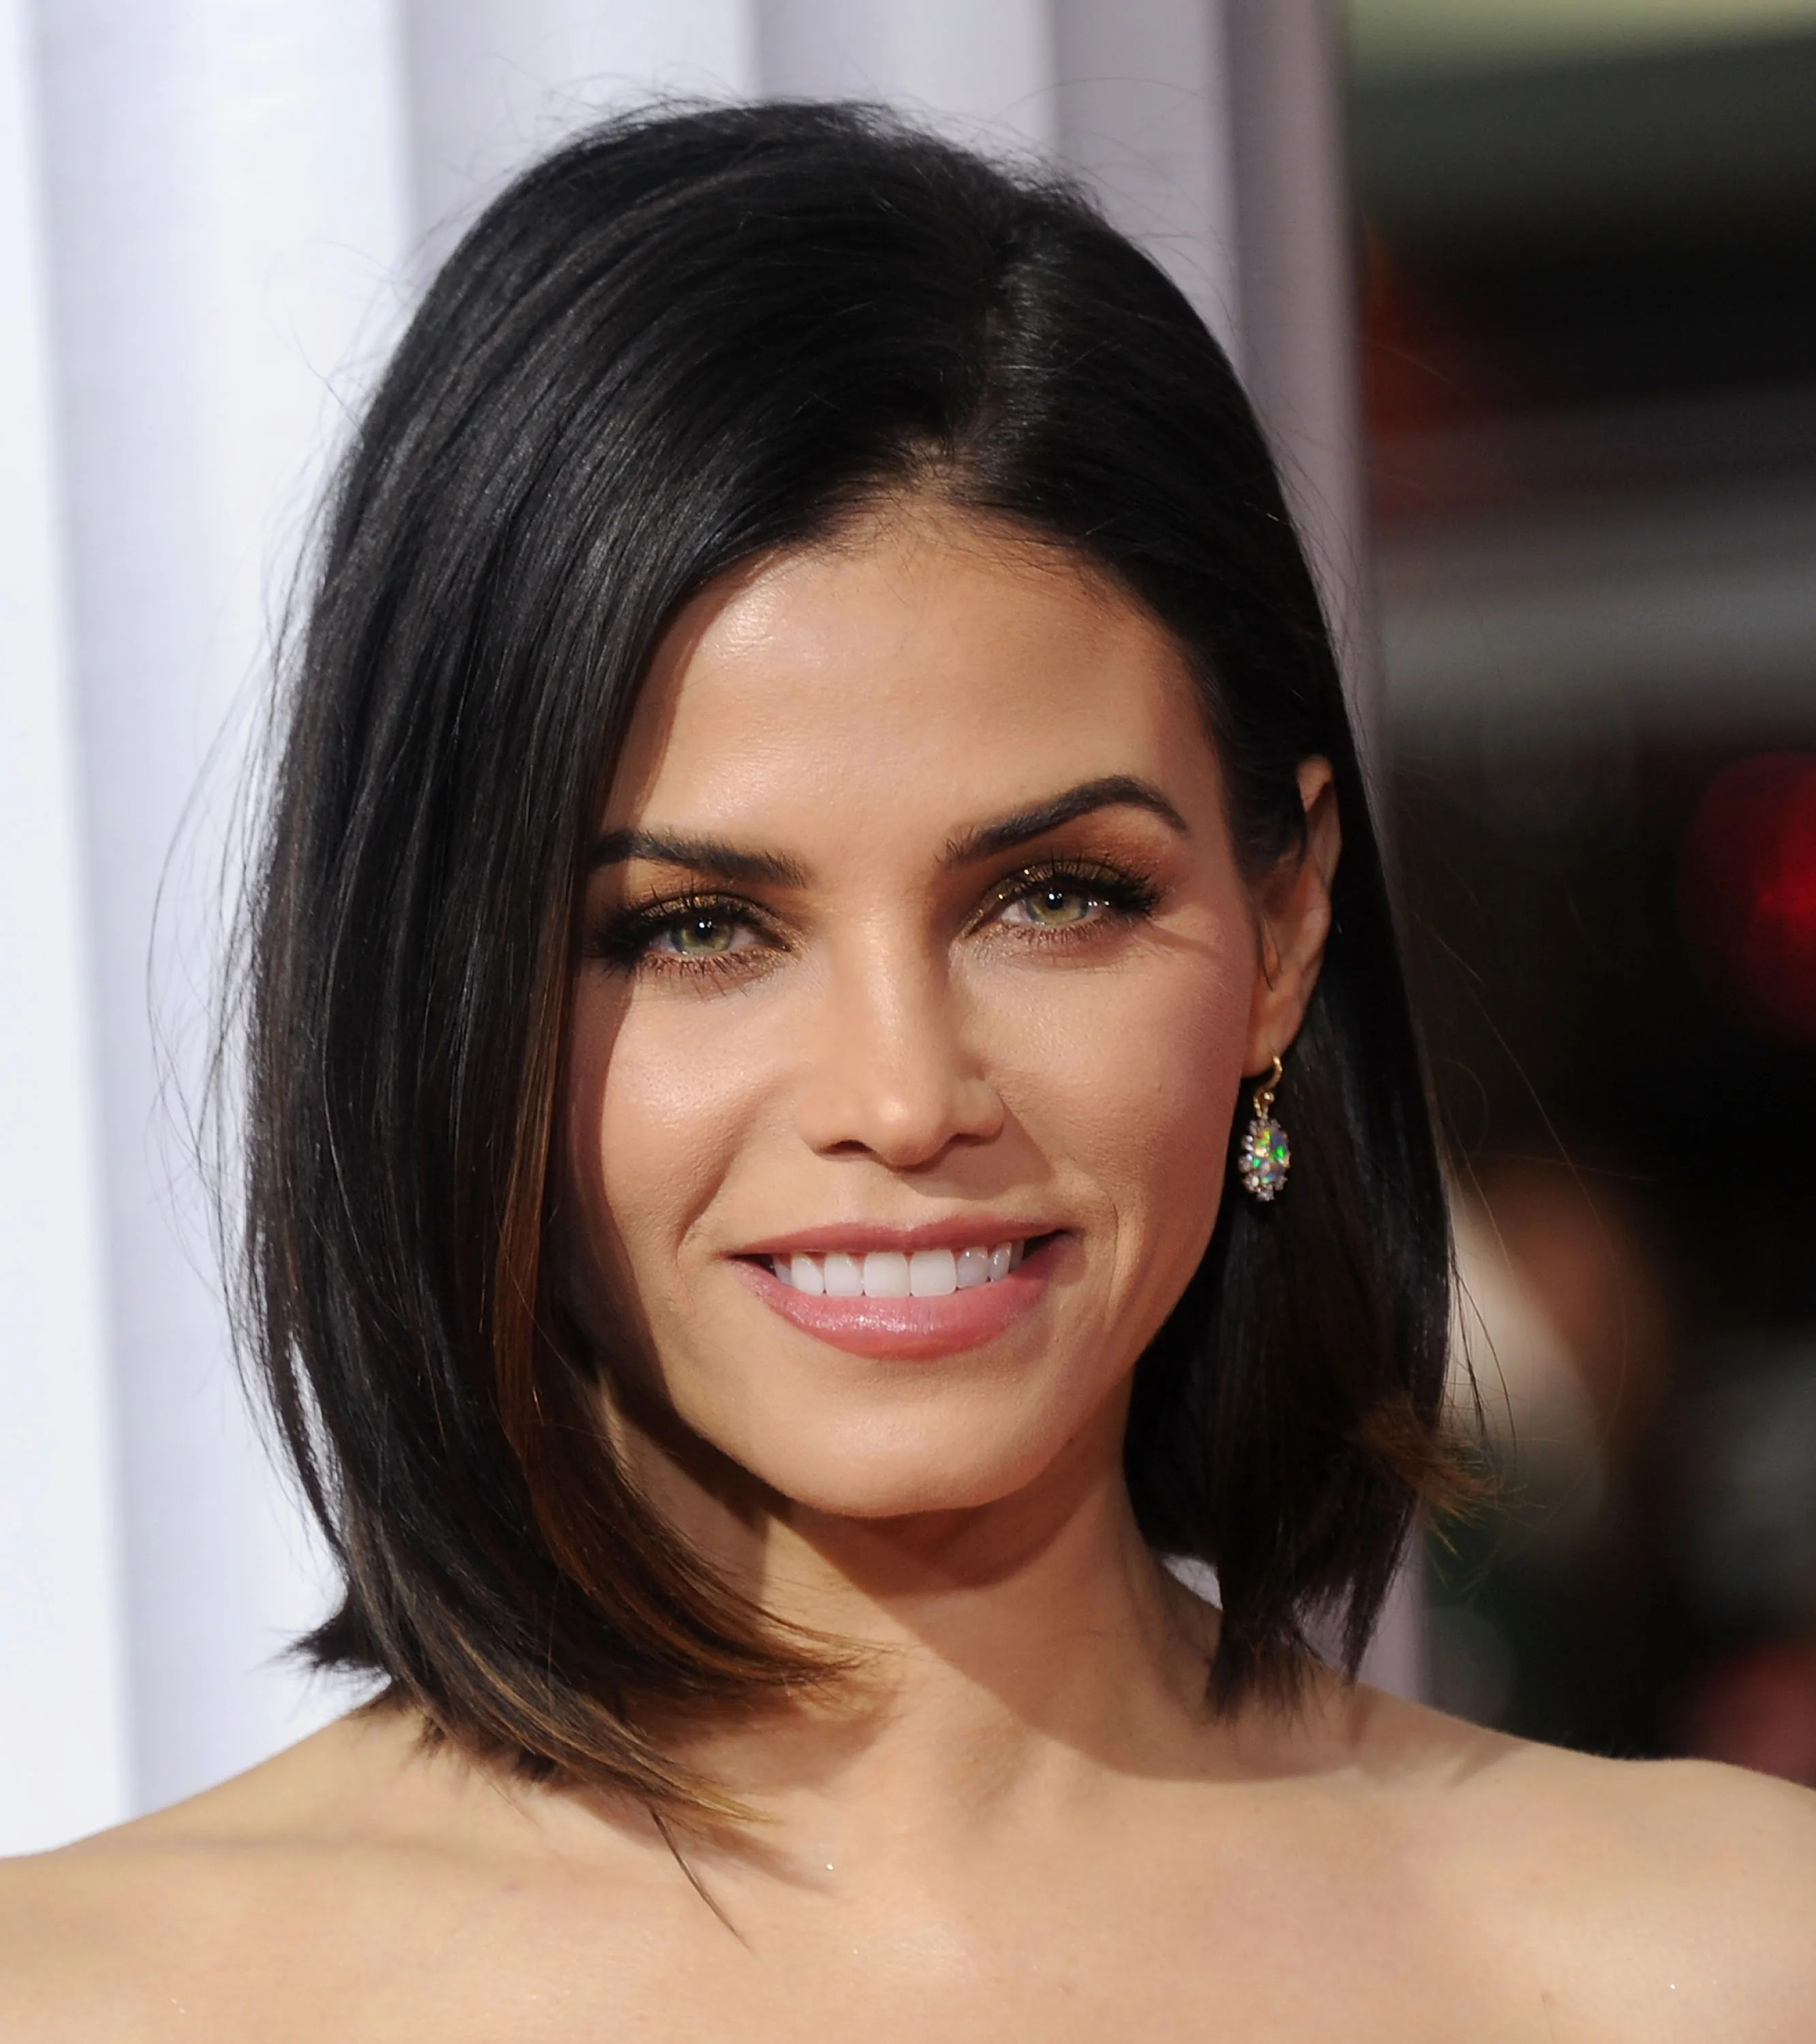 Spring Hairstyles 2016 Spring Haircut Ideas for Short Medium and Long Hair  Glamour